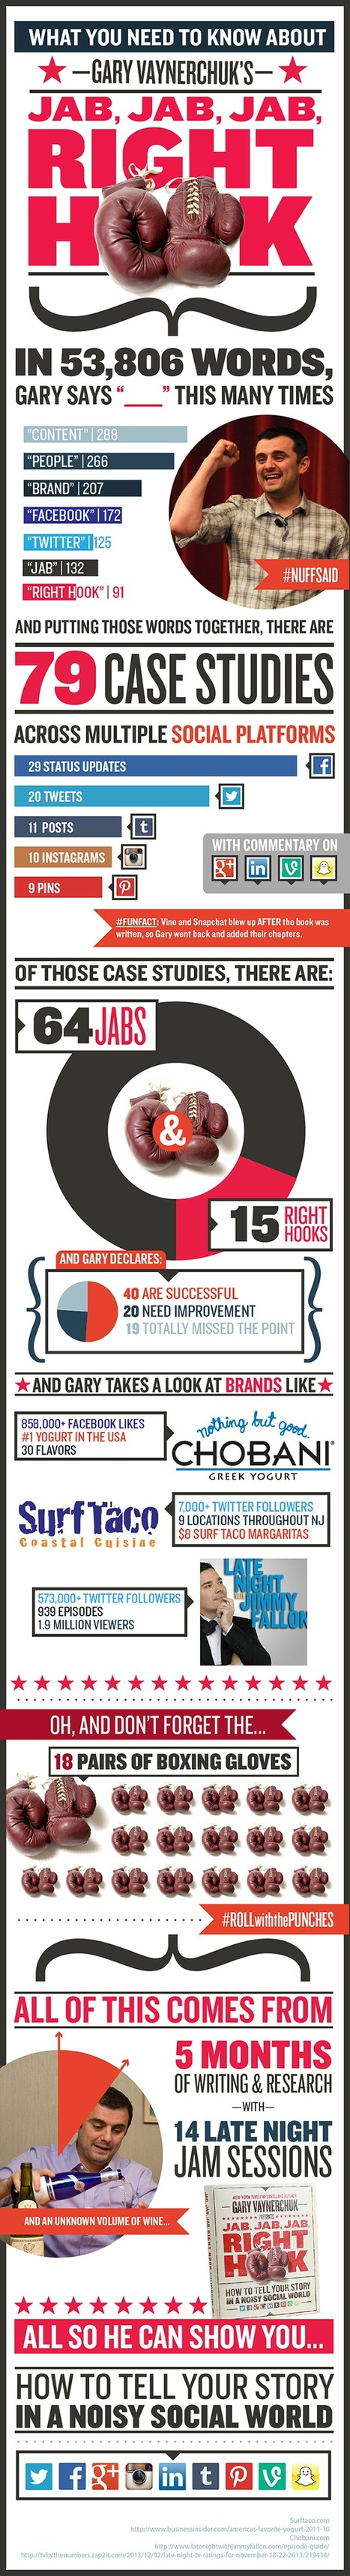 What You Need to Know About Jab, Jab, Jab, Right Hook by Gary Vaynerchuk [Infographic] | Marketing Revolution | Scoop.it